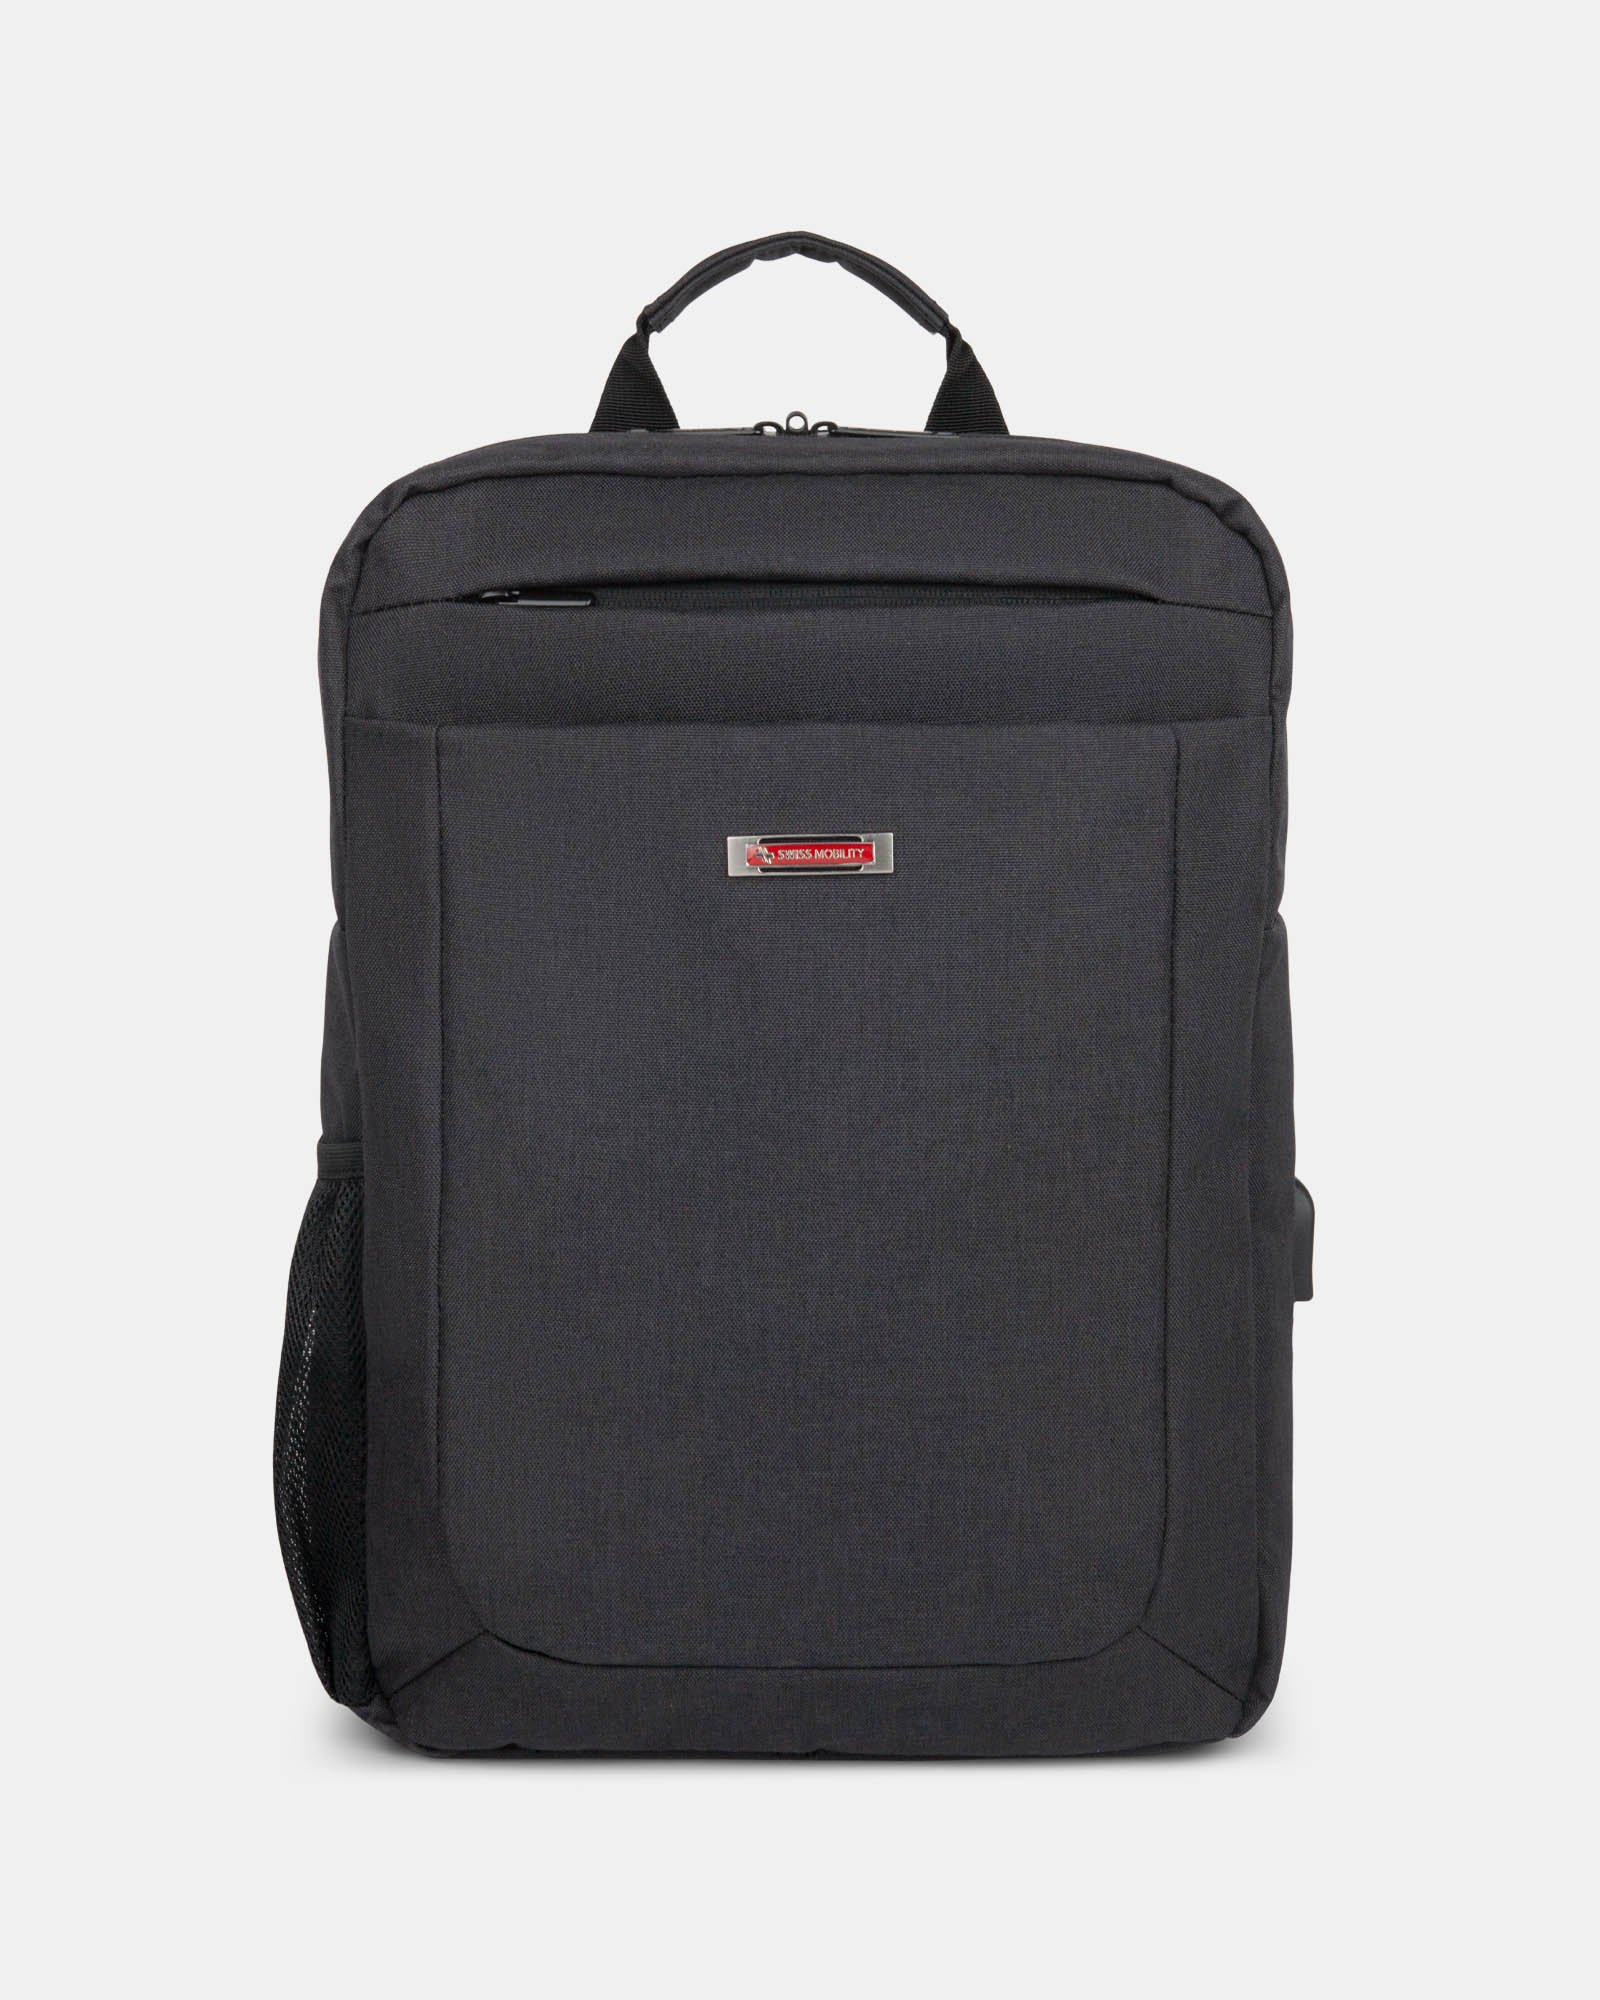 CADENCE - 15.6 in computer Backpack with USB port - Charcoal - Swiss Mobility - Zoom